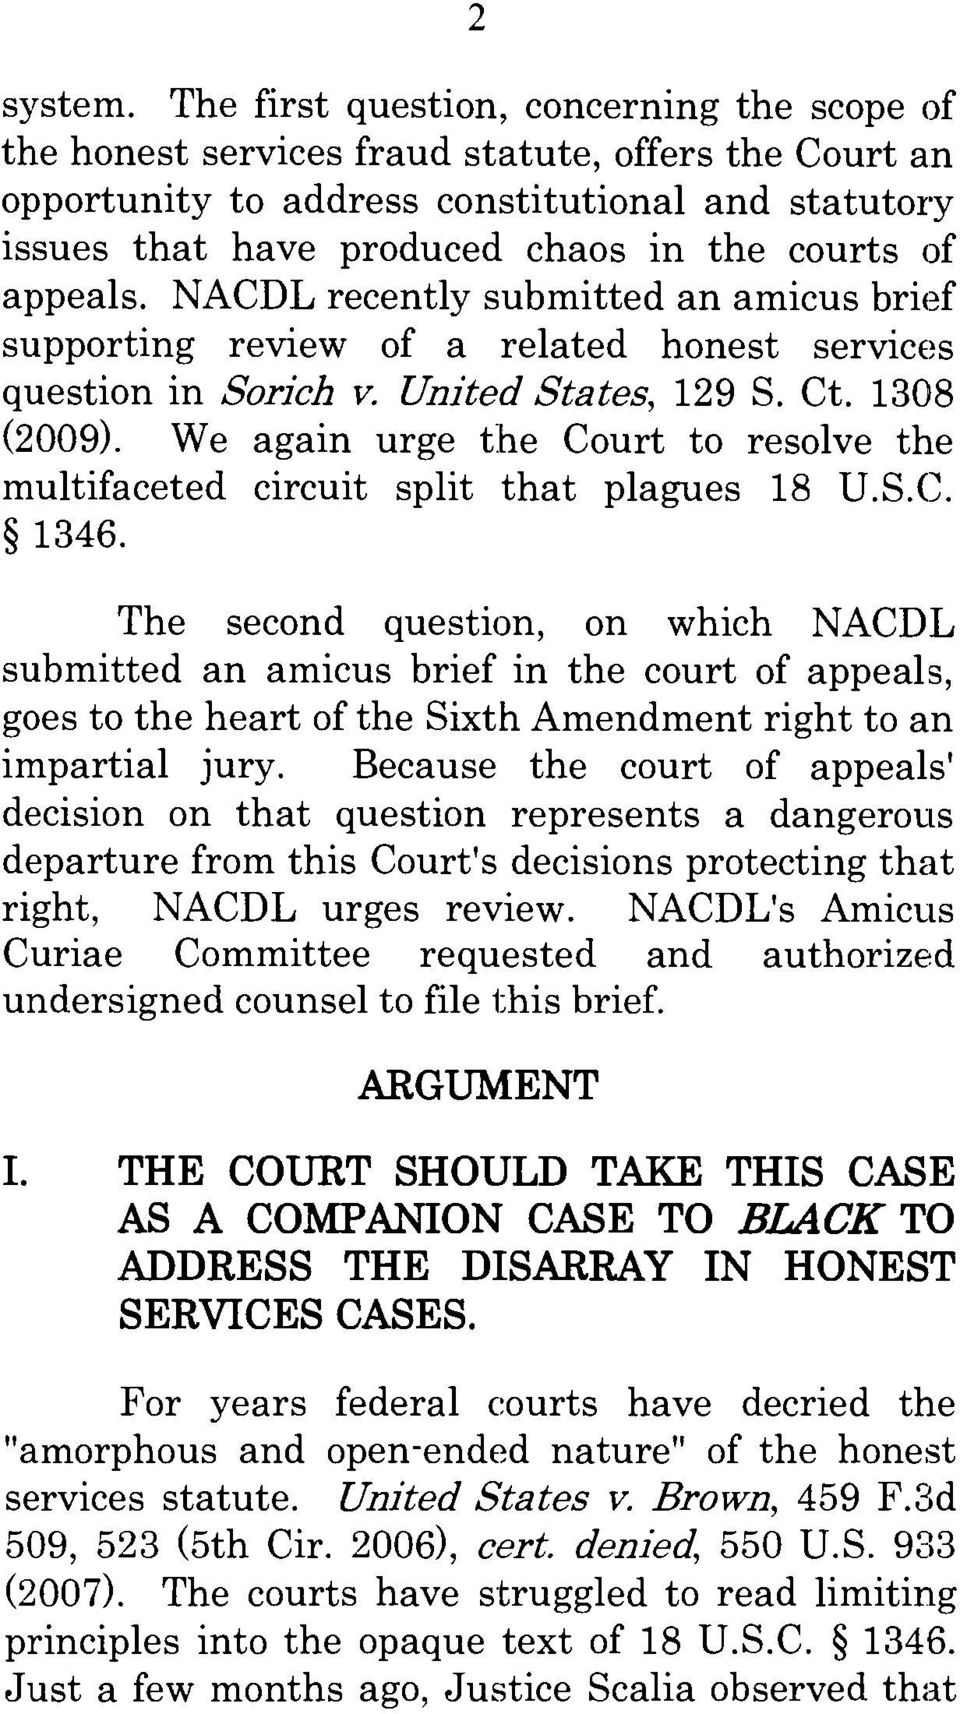 appeals. NACDL recently submitted an amicus brief supporting review of a related honest services question in Sorieh v. United States, 129 S. Ct. 1308 (2009).